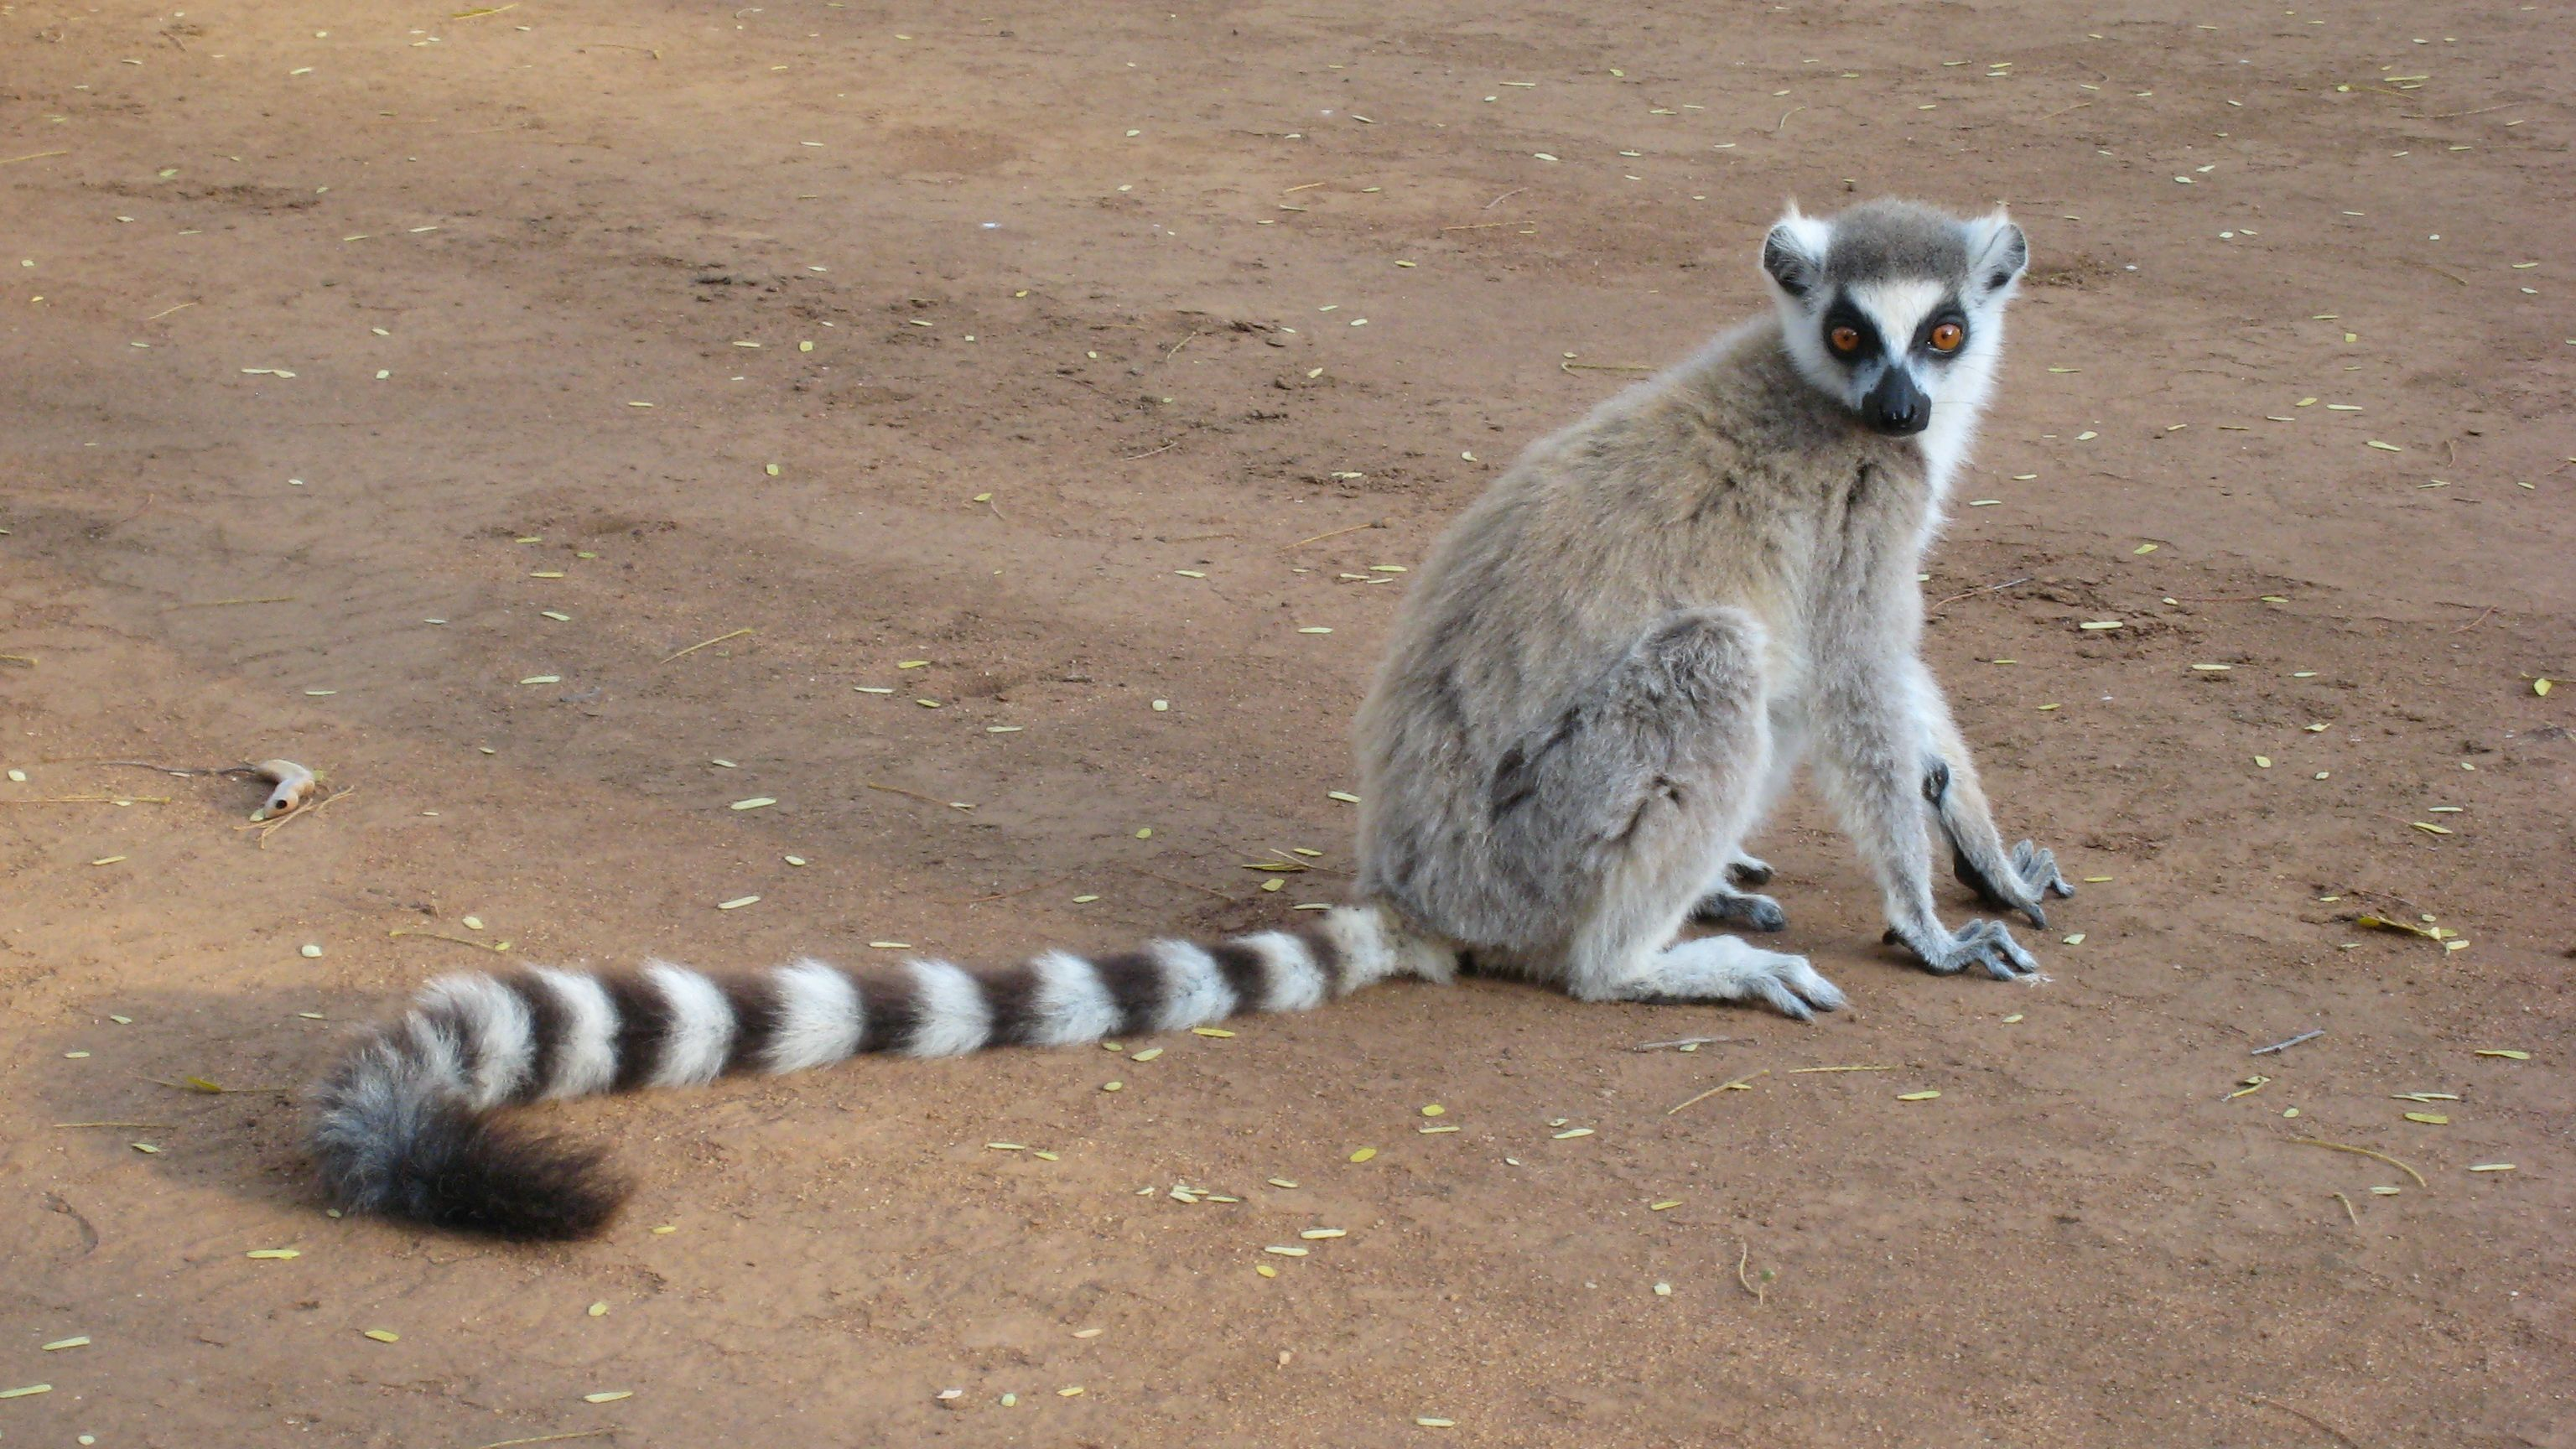 im in love with lemurs because my favorite show had a lemur in it when i